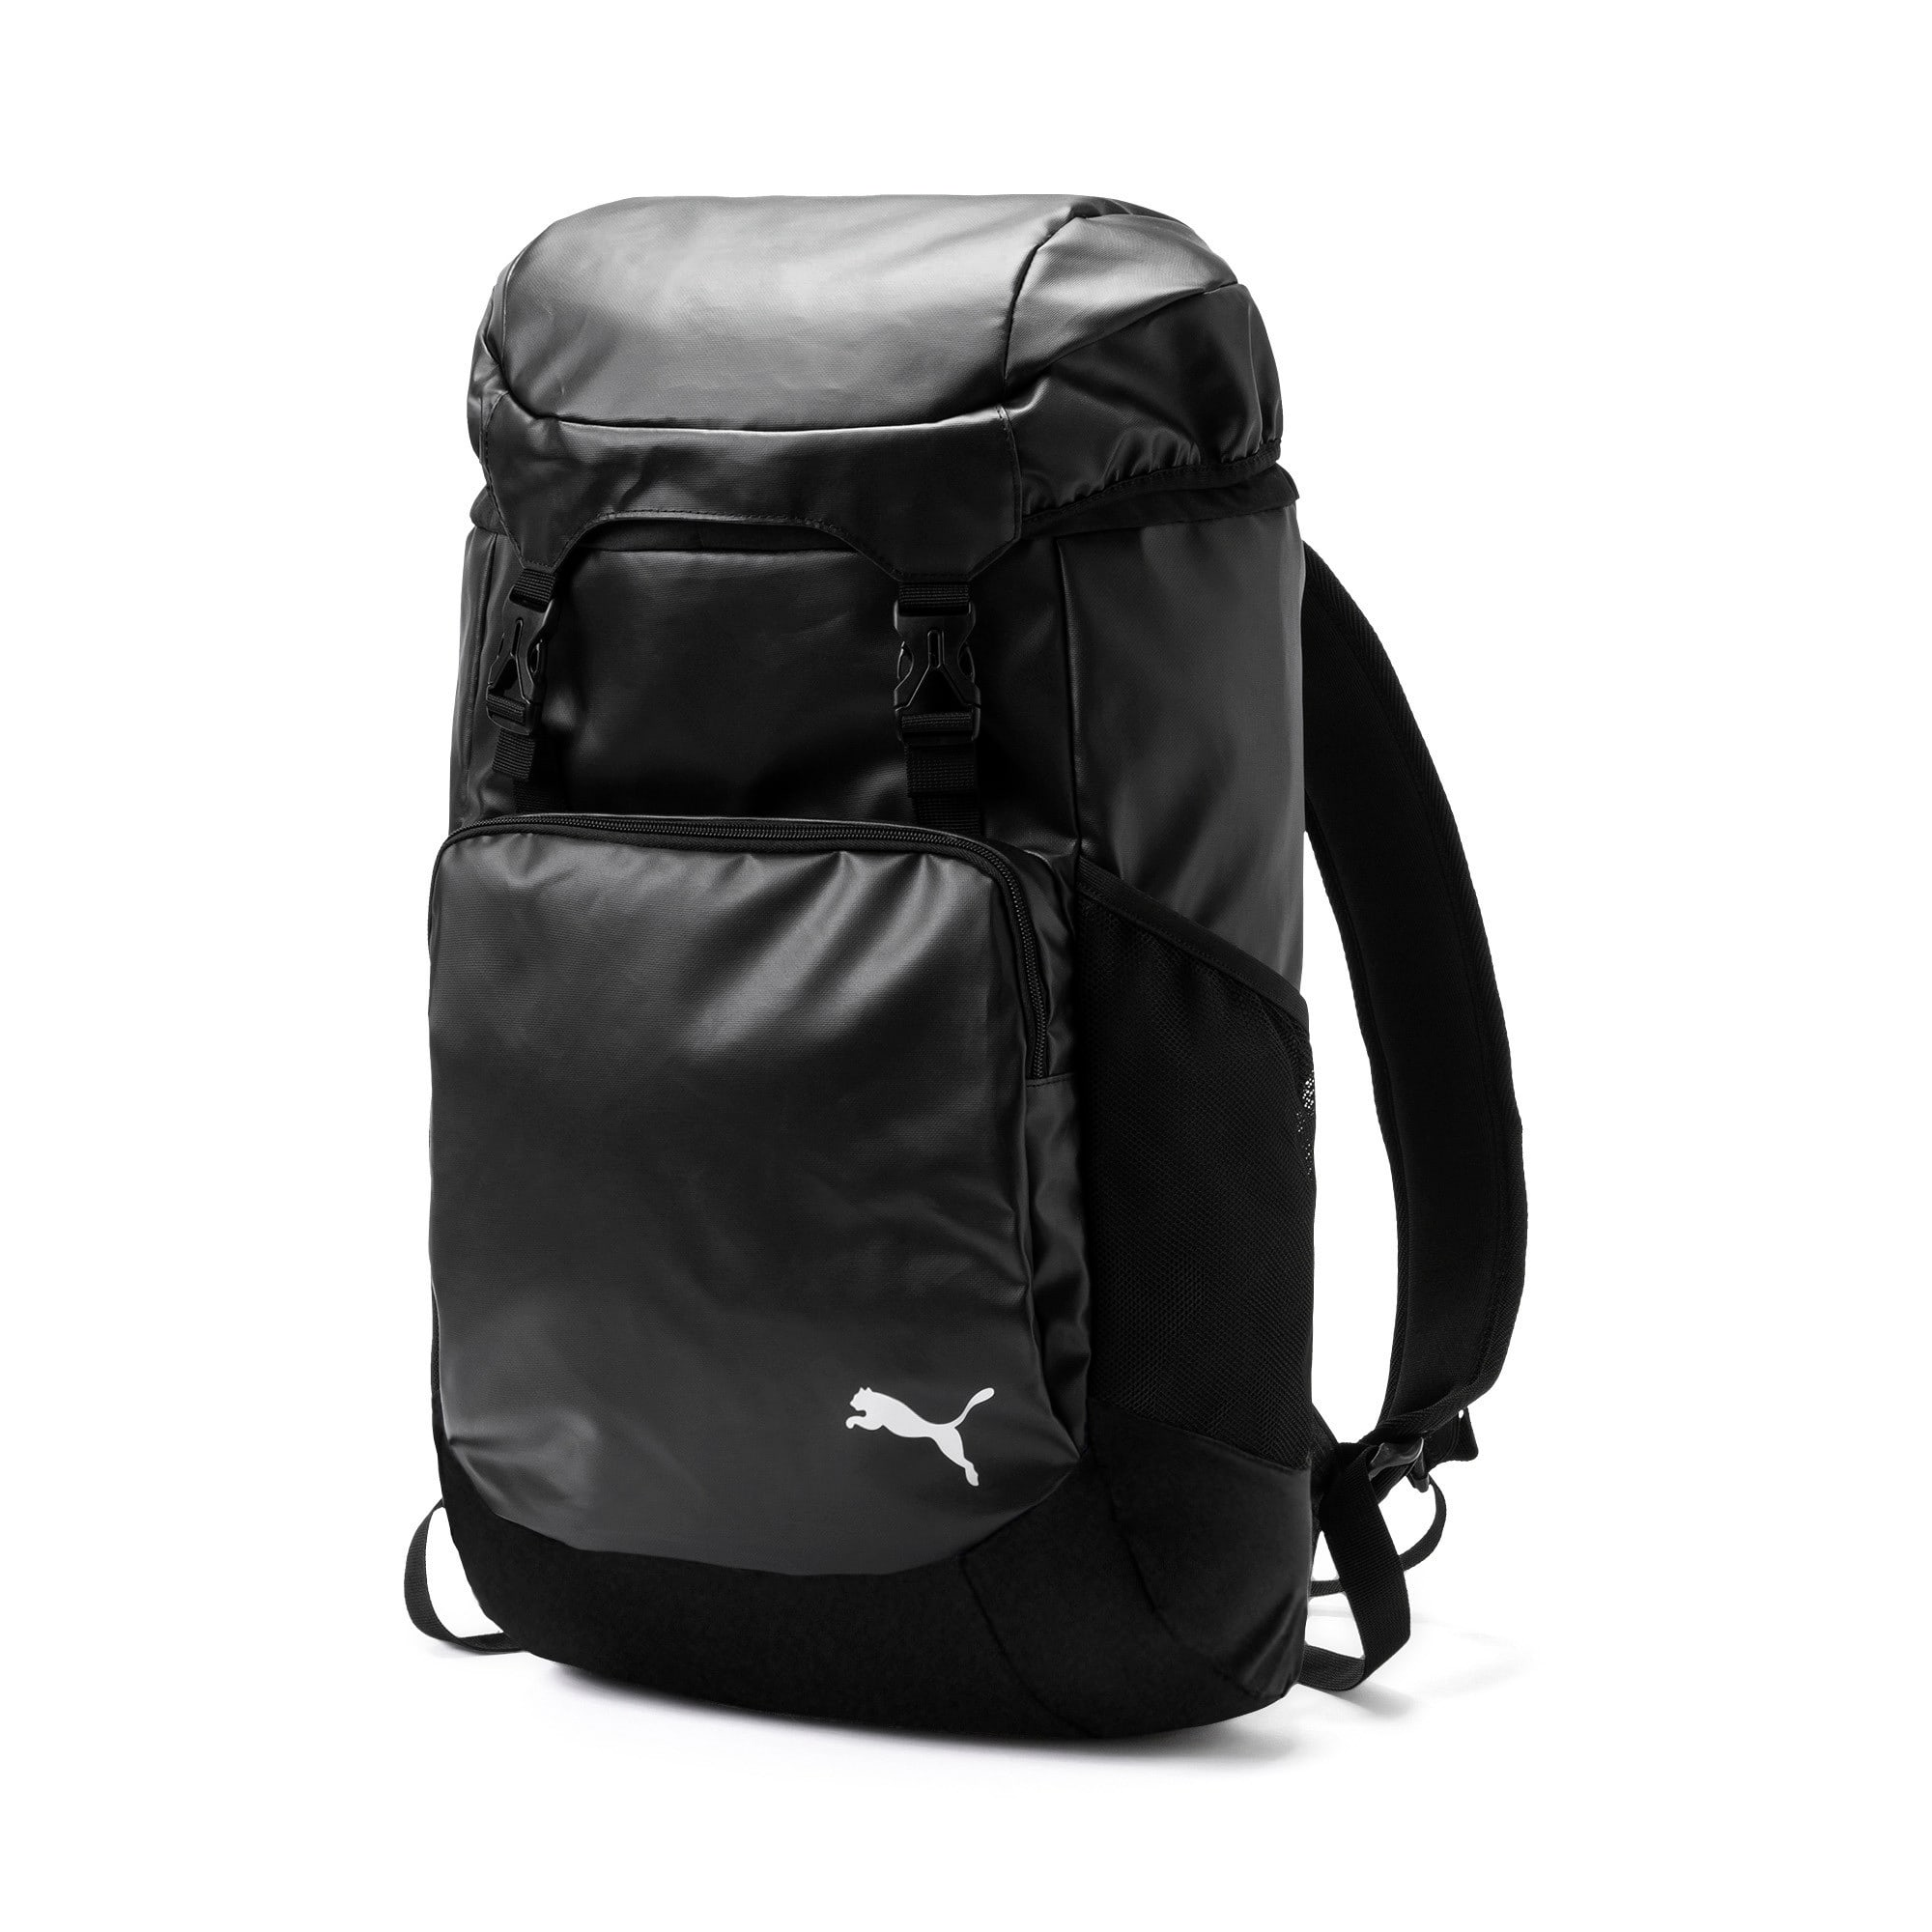 Thumbnail 1 of TR Pro Daily Backpack, Puma Black, medium